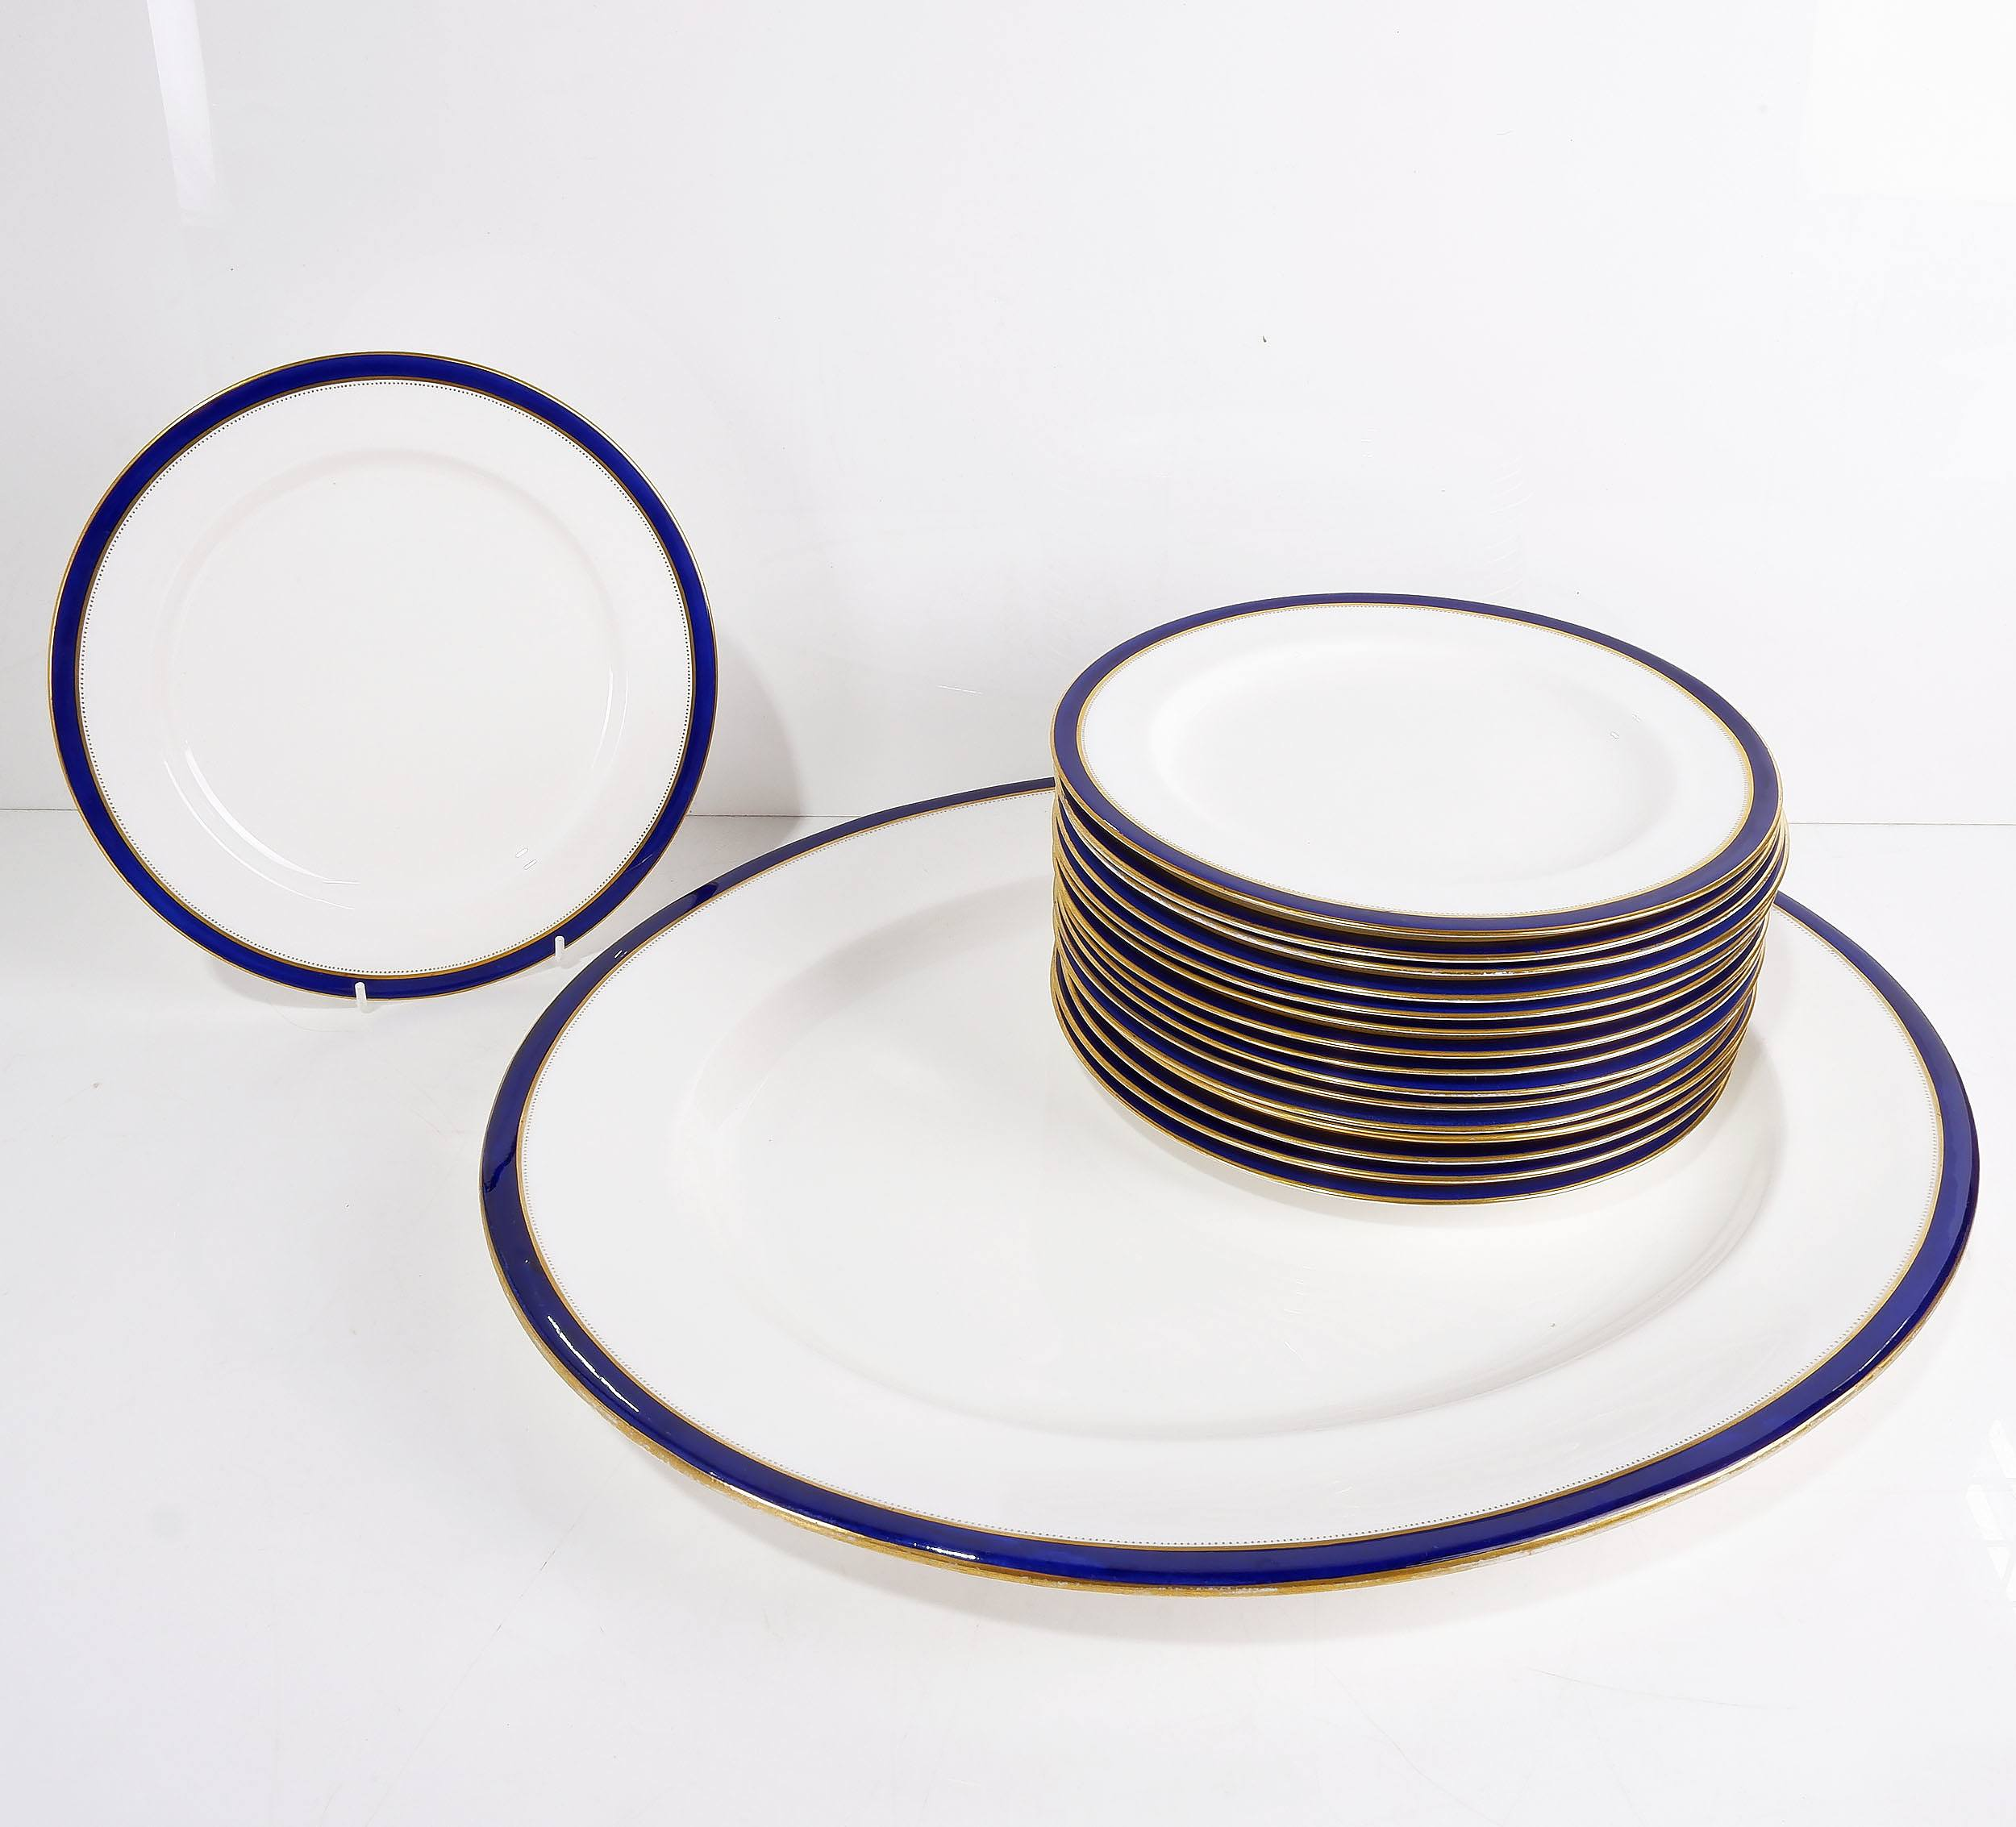 'Sixteen Royal Worcester Leadless Glaze Cobalt Blue Plates and Serving Dish'